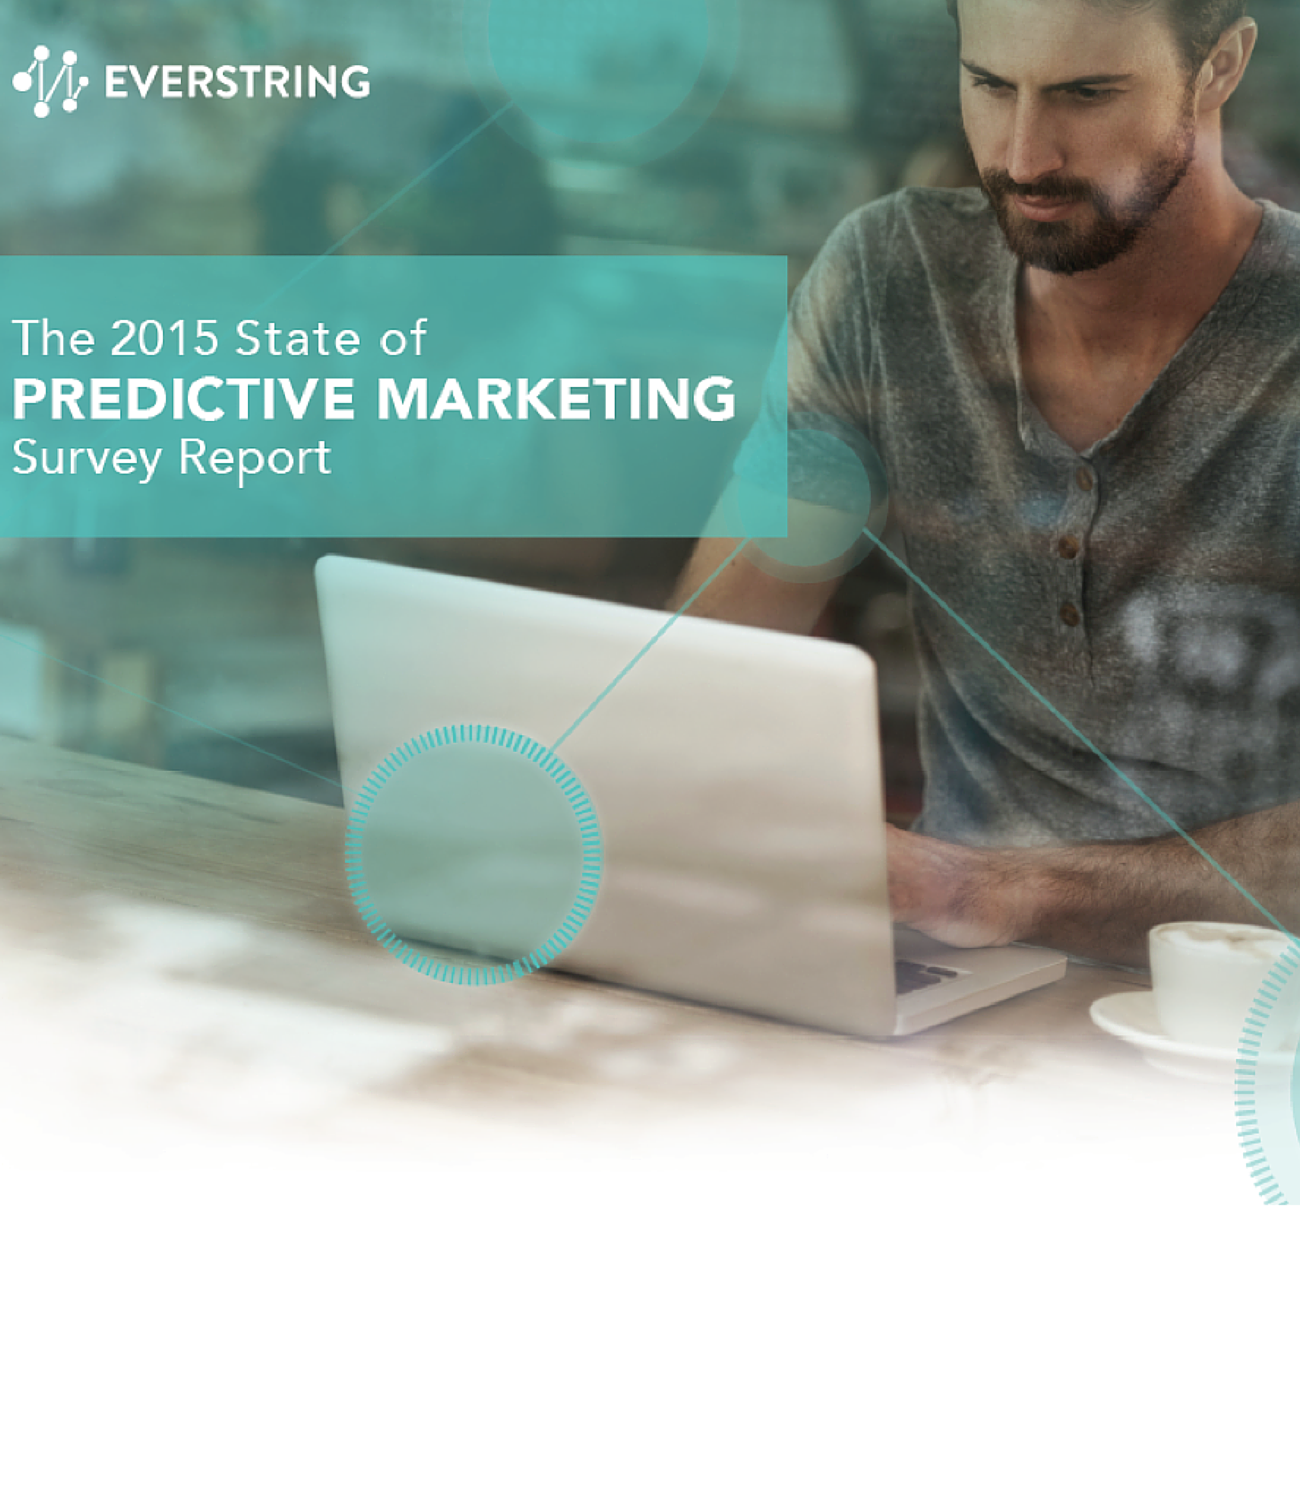 The 2015 State of Predictive Marketing Report